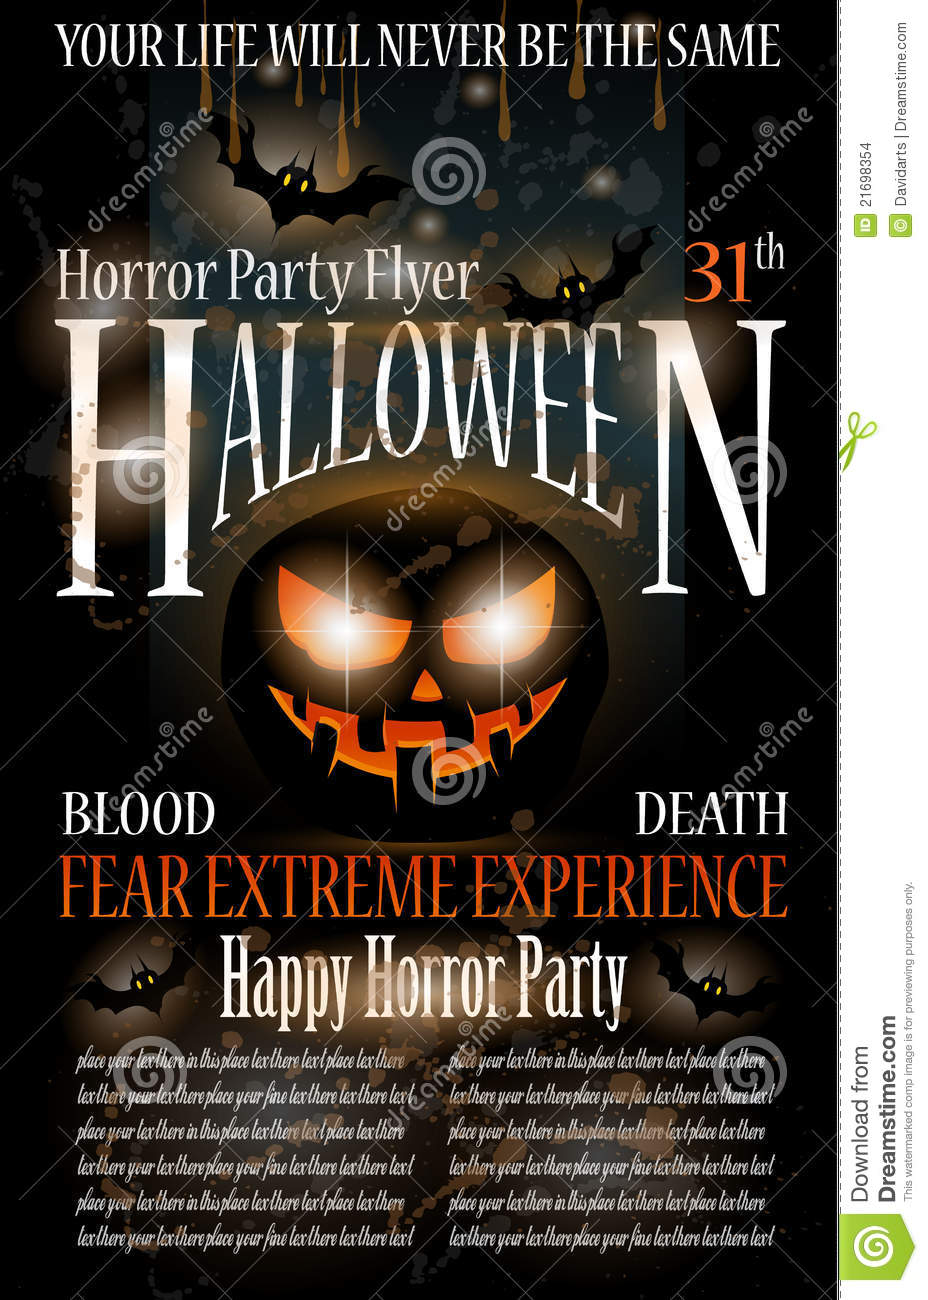 Halloween Horror Party Flyer Stock Images Image 21698354